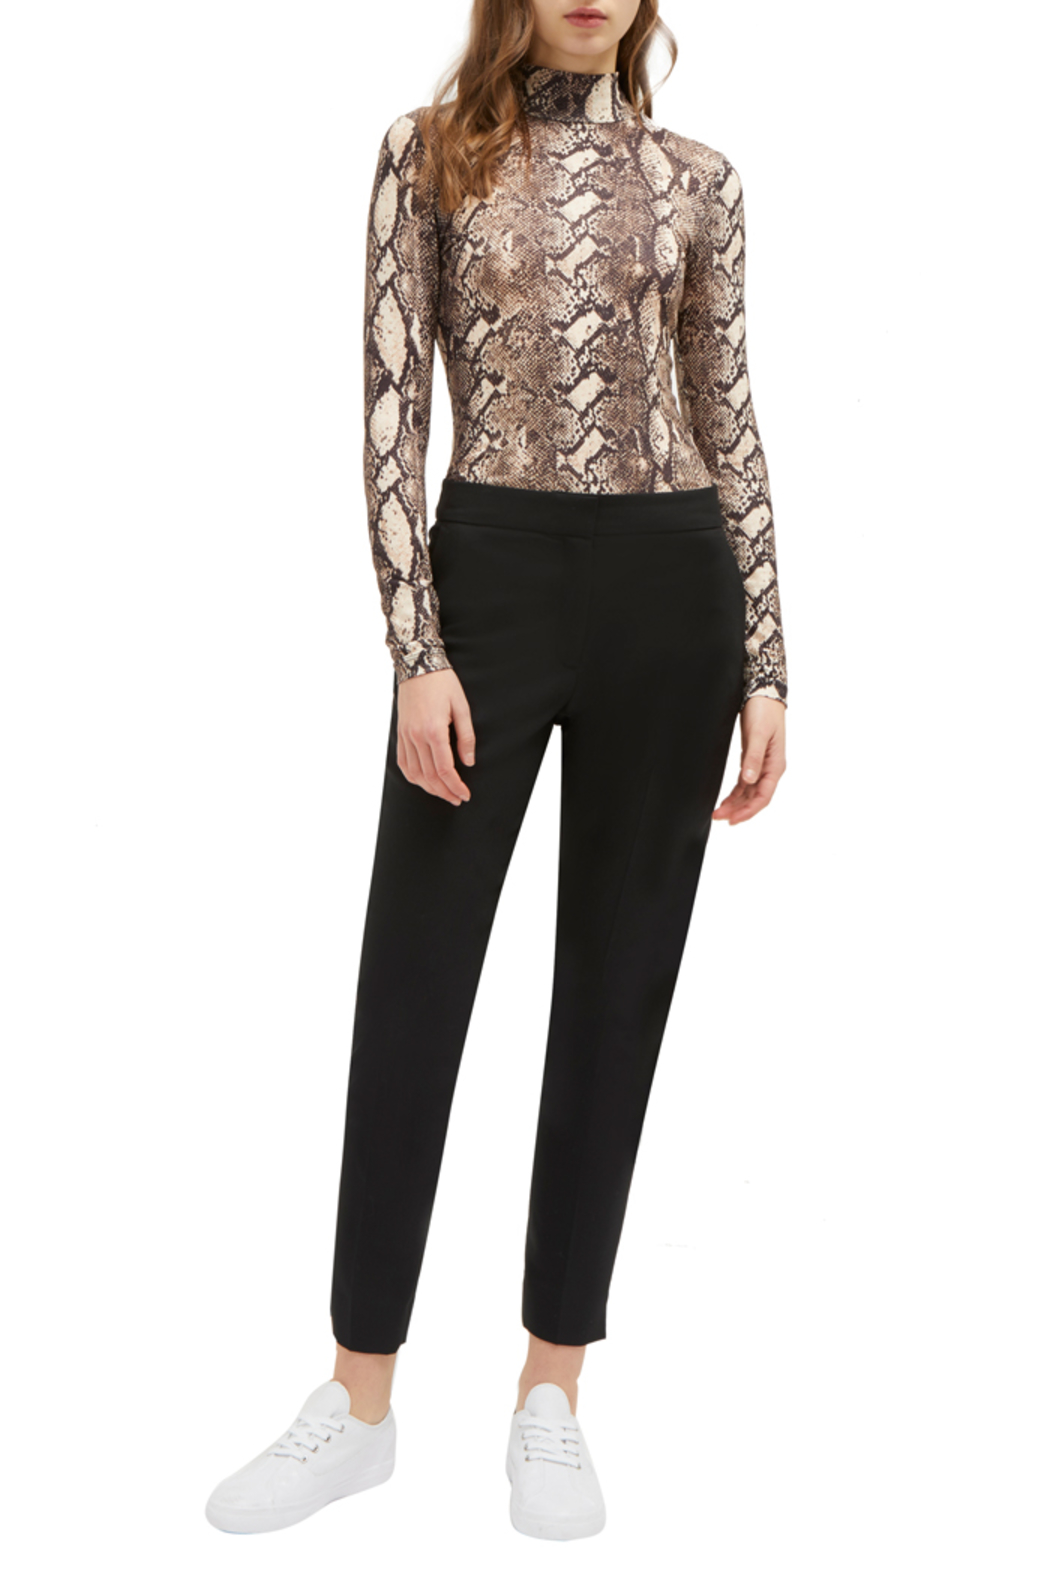 French Connection SNAKE PRINT HIGH NECK TOP - Front Full Image